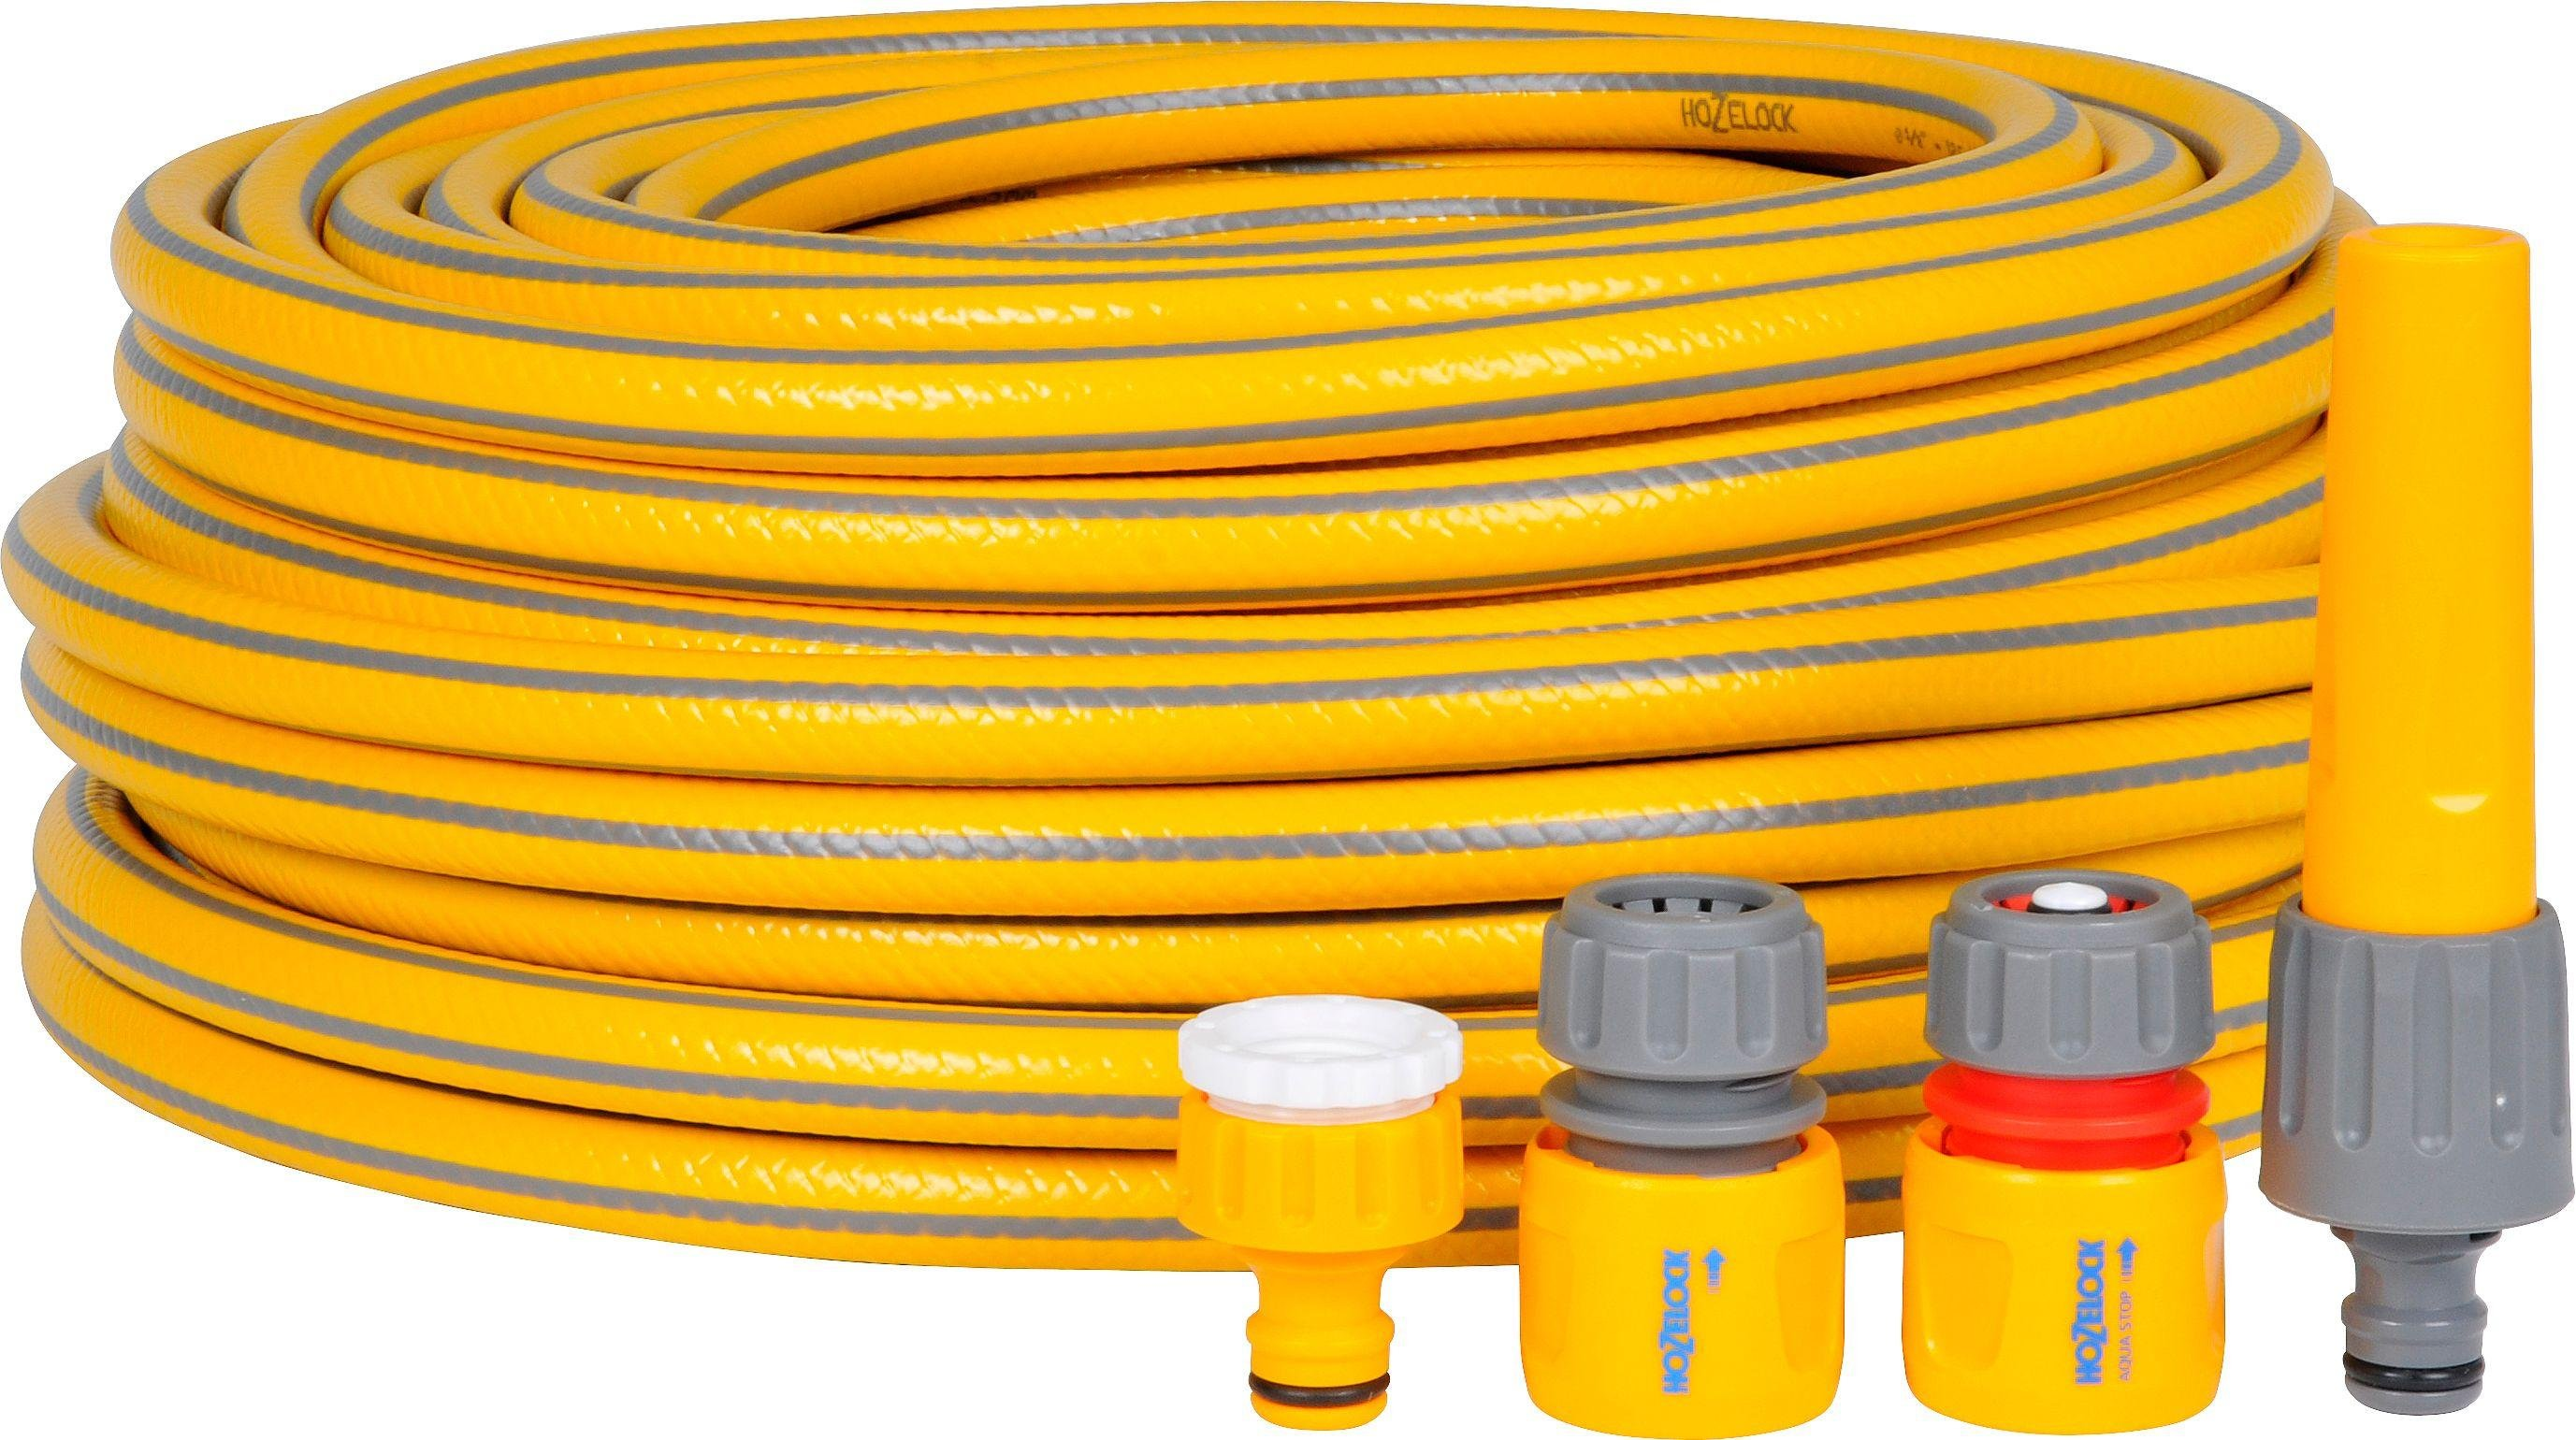 Hozelock Starter Hose Set - 15m lowest price